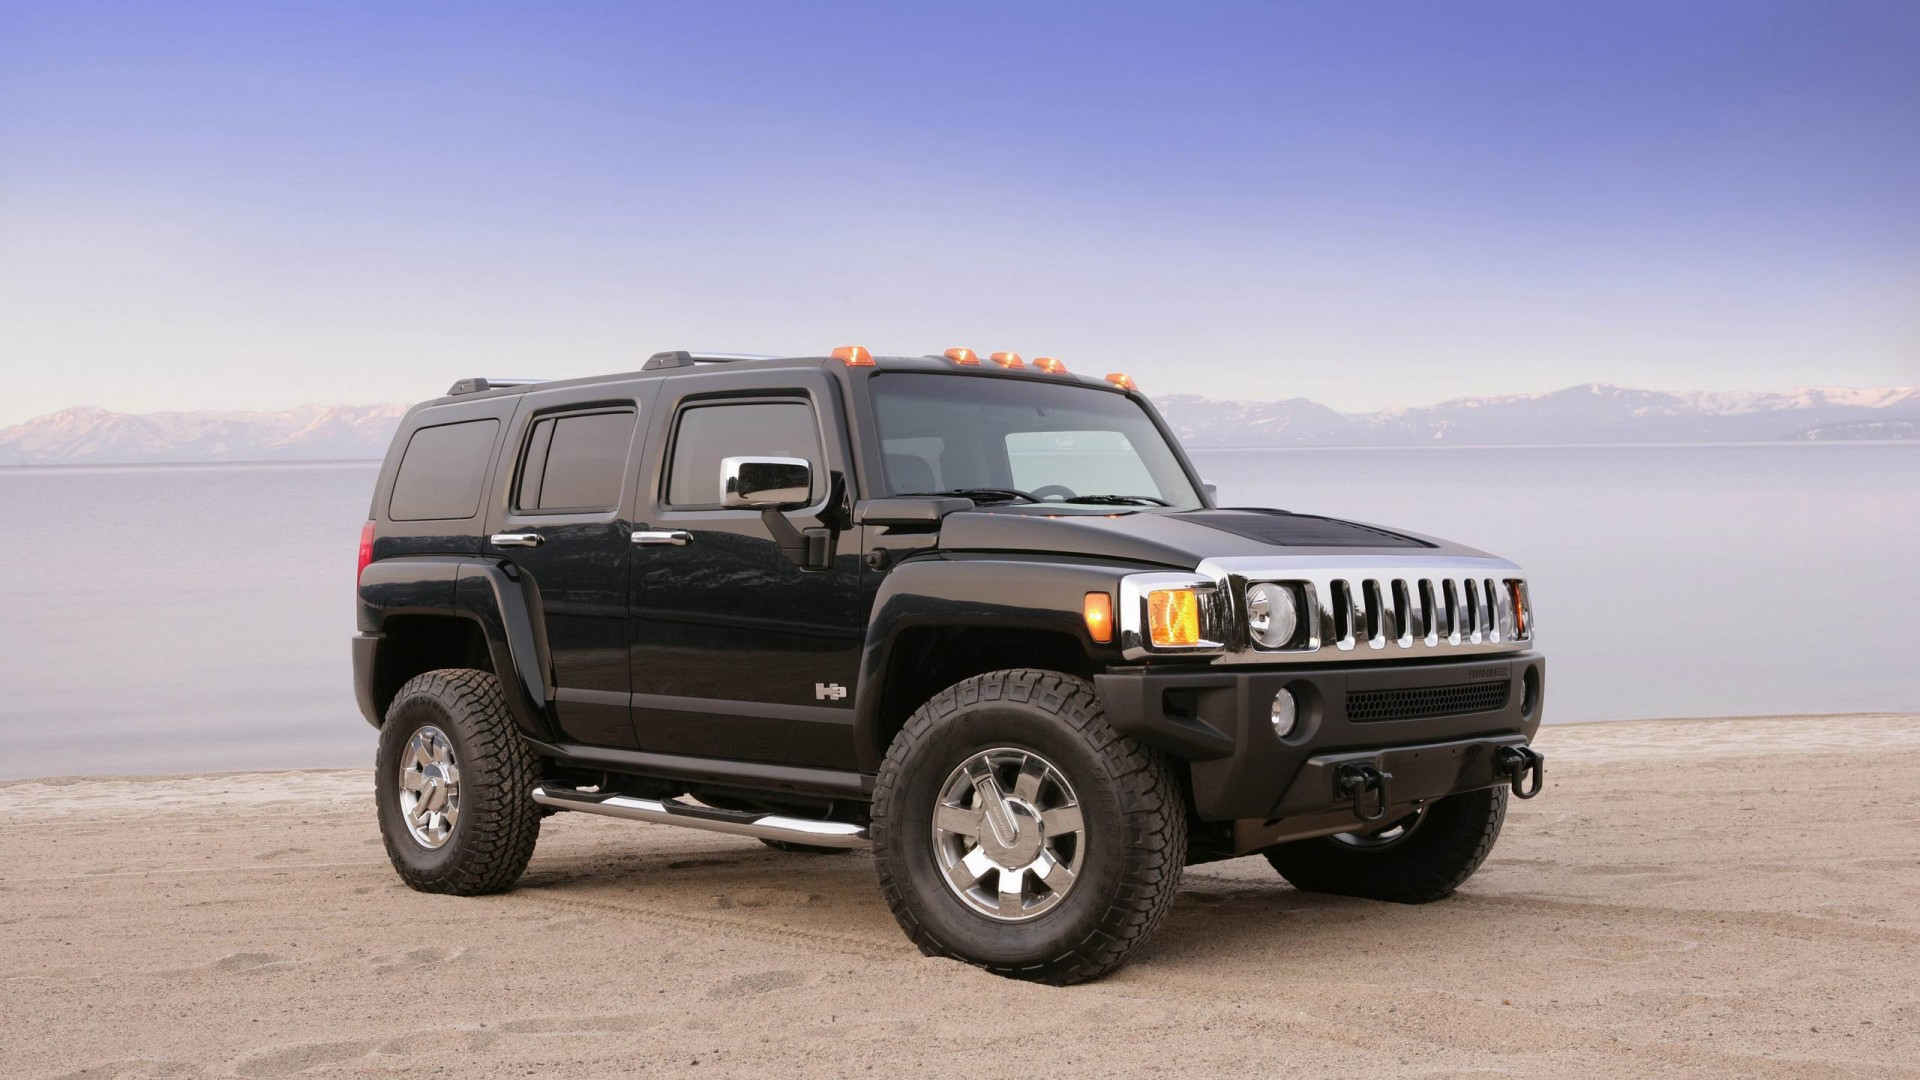 hummer car wallpapers 2013. black hummer desktop wallpaper 59745 car wallpapers 2013